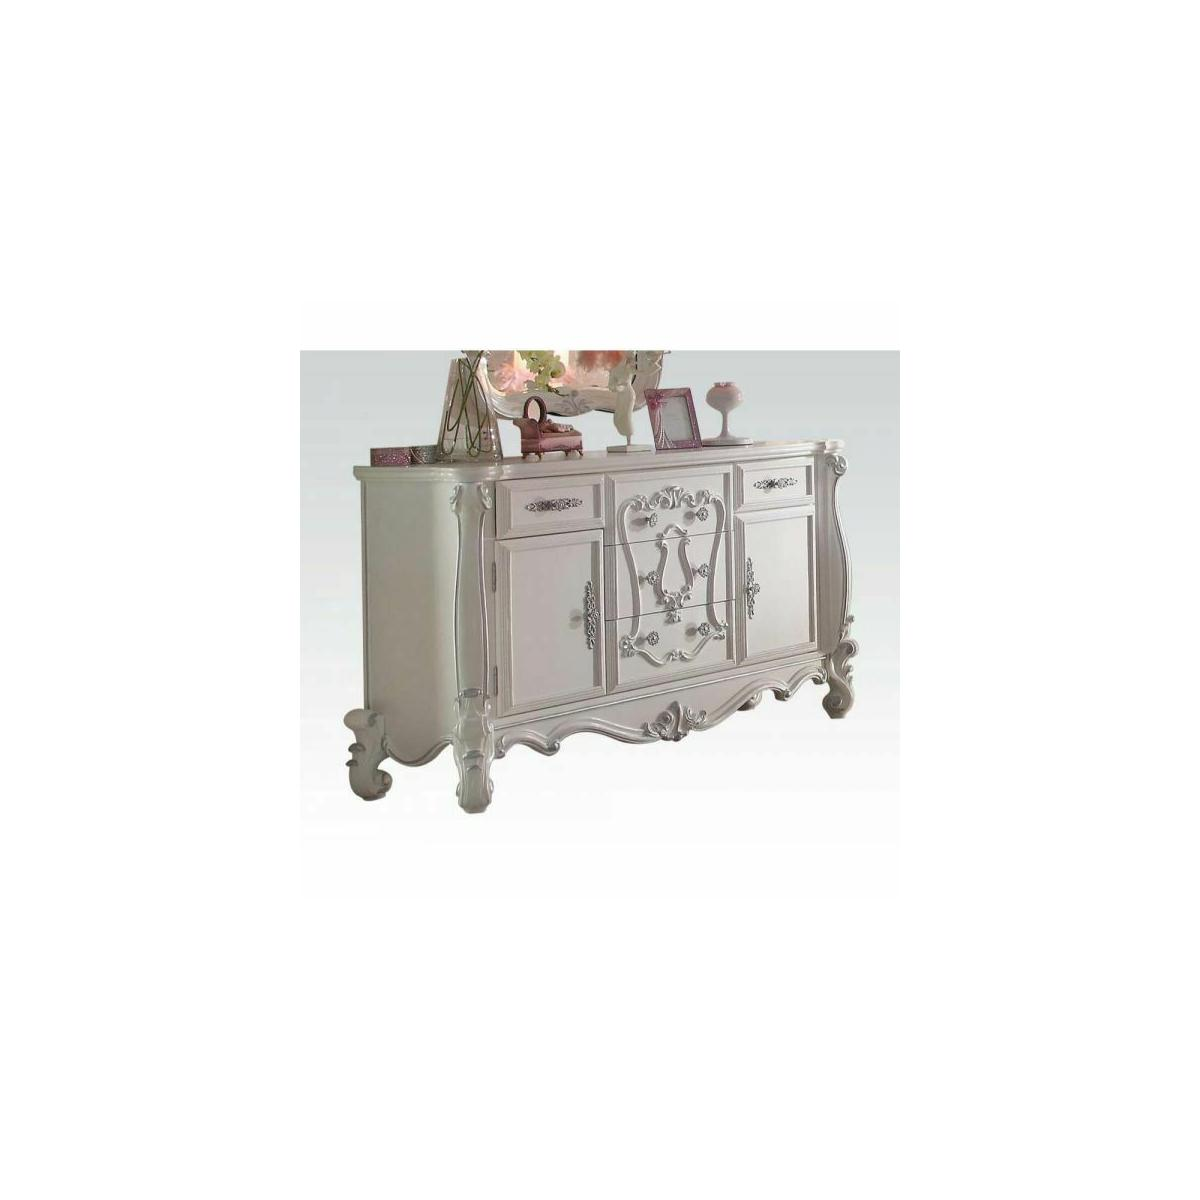 ACME Versailles Dresser - 30655 - Antique White